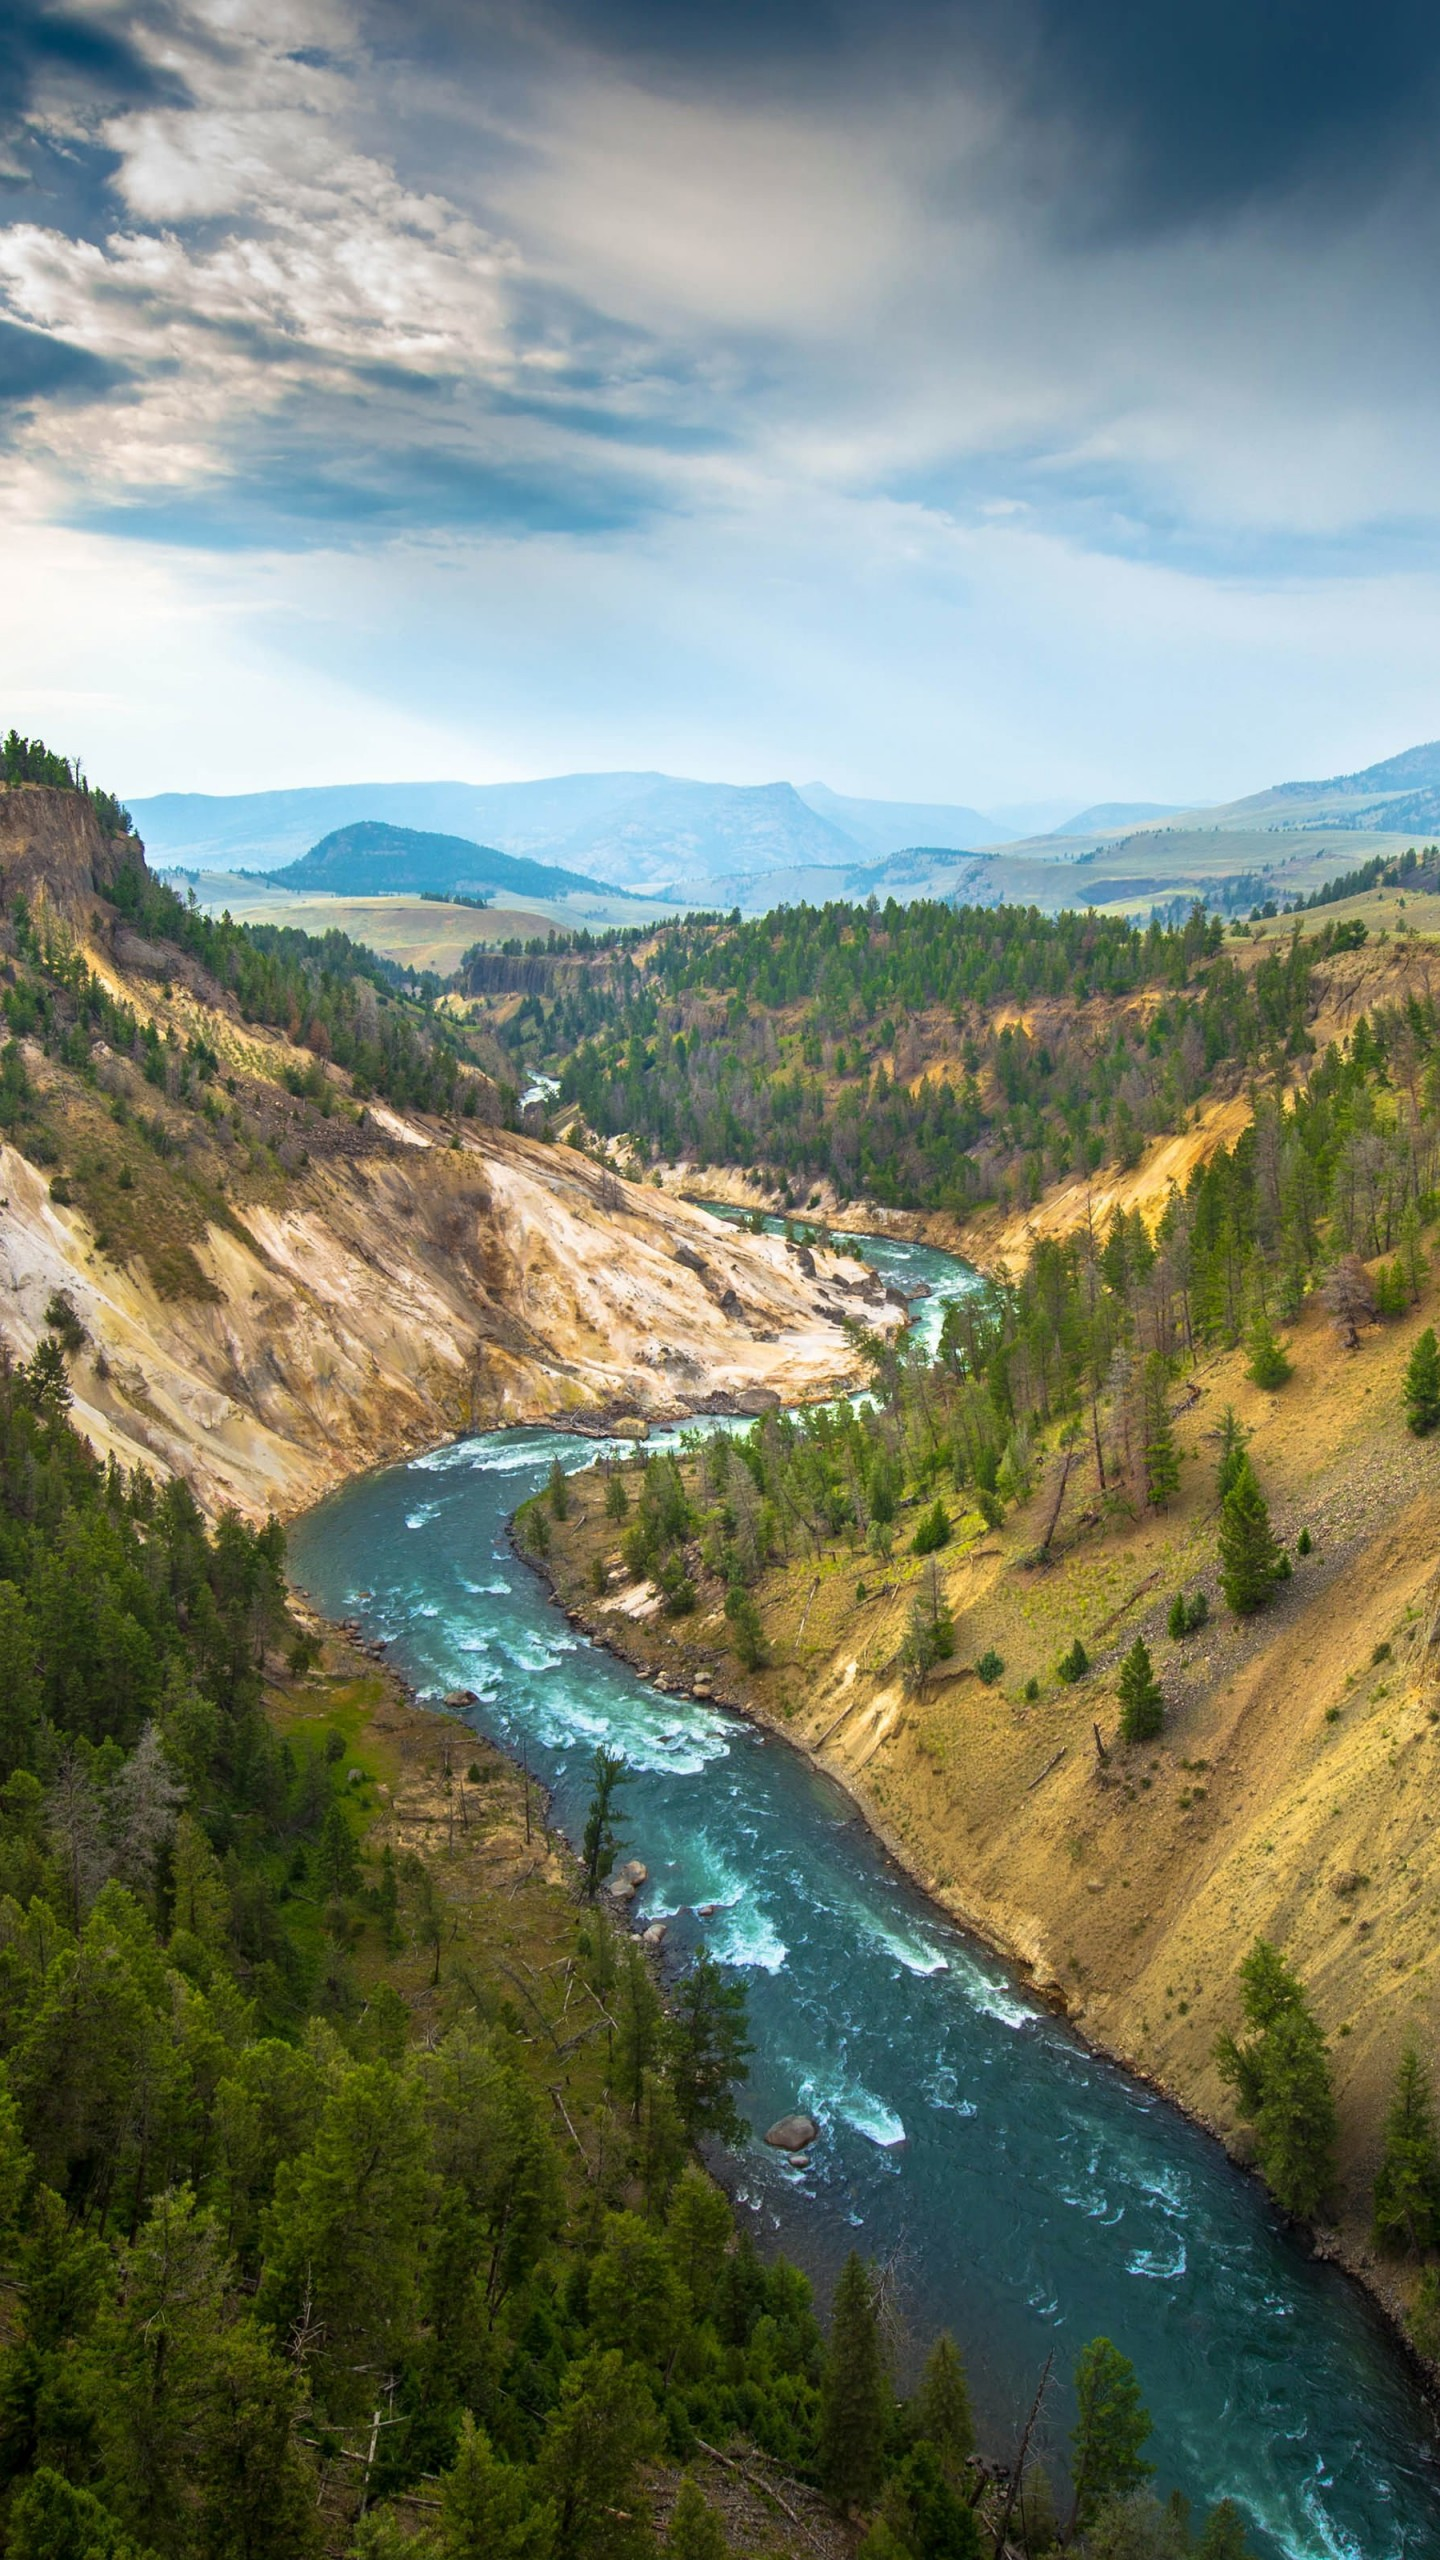 The River, Grand Canyon of Yellowstone National Park, USA Wallpaper for SAMSUNG Galaxy S6